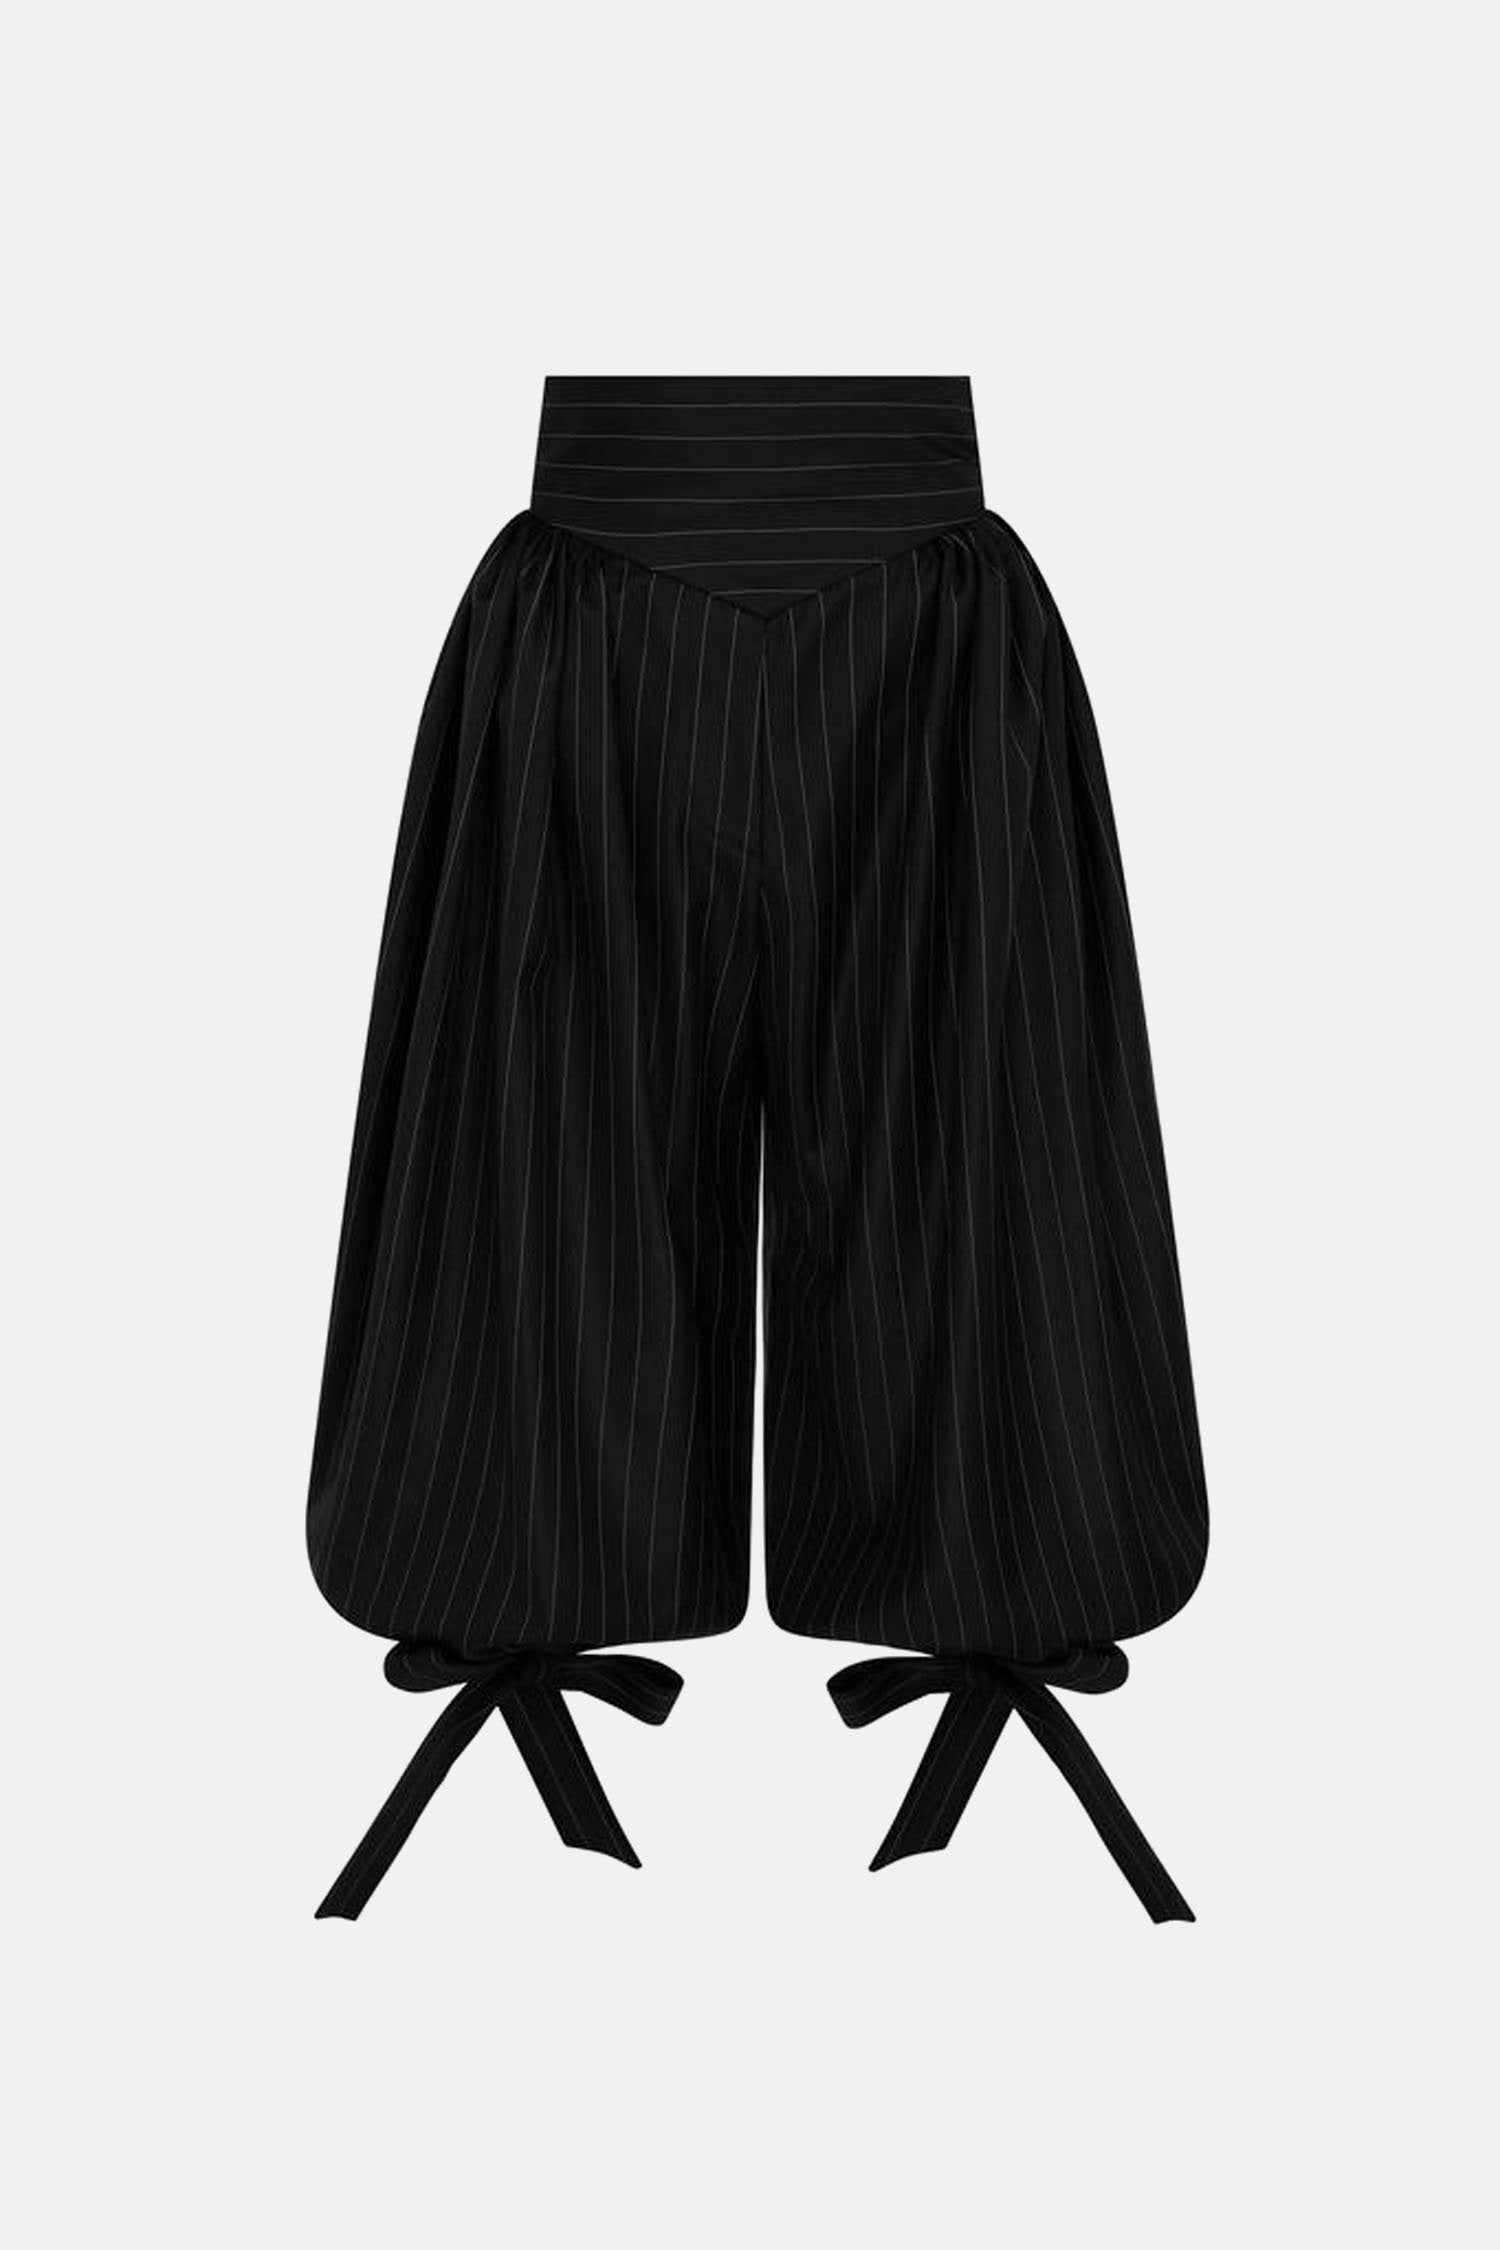 Dancer of Death Trousers - 50% off